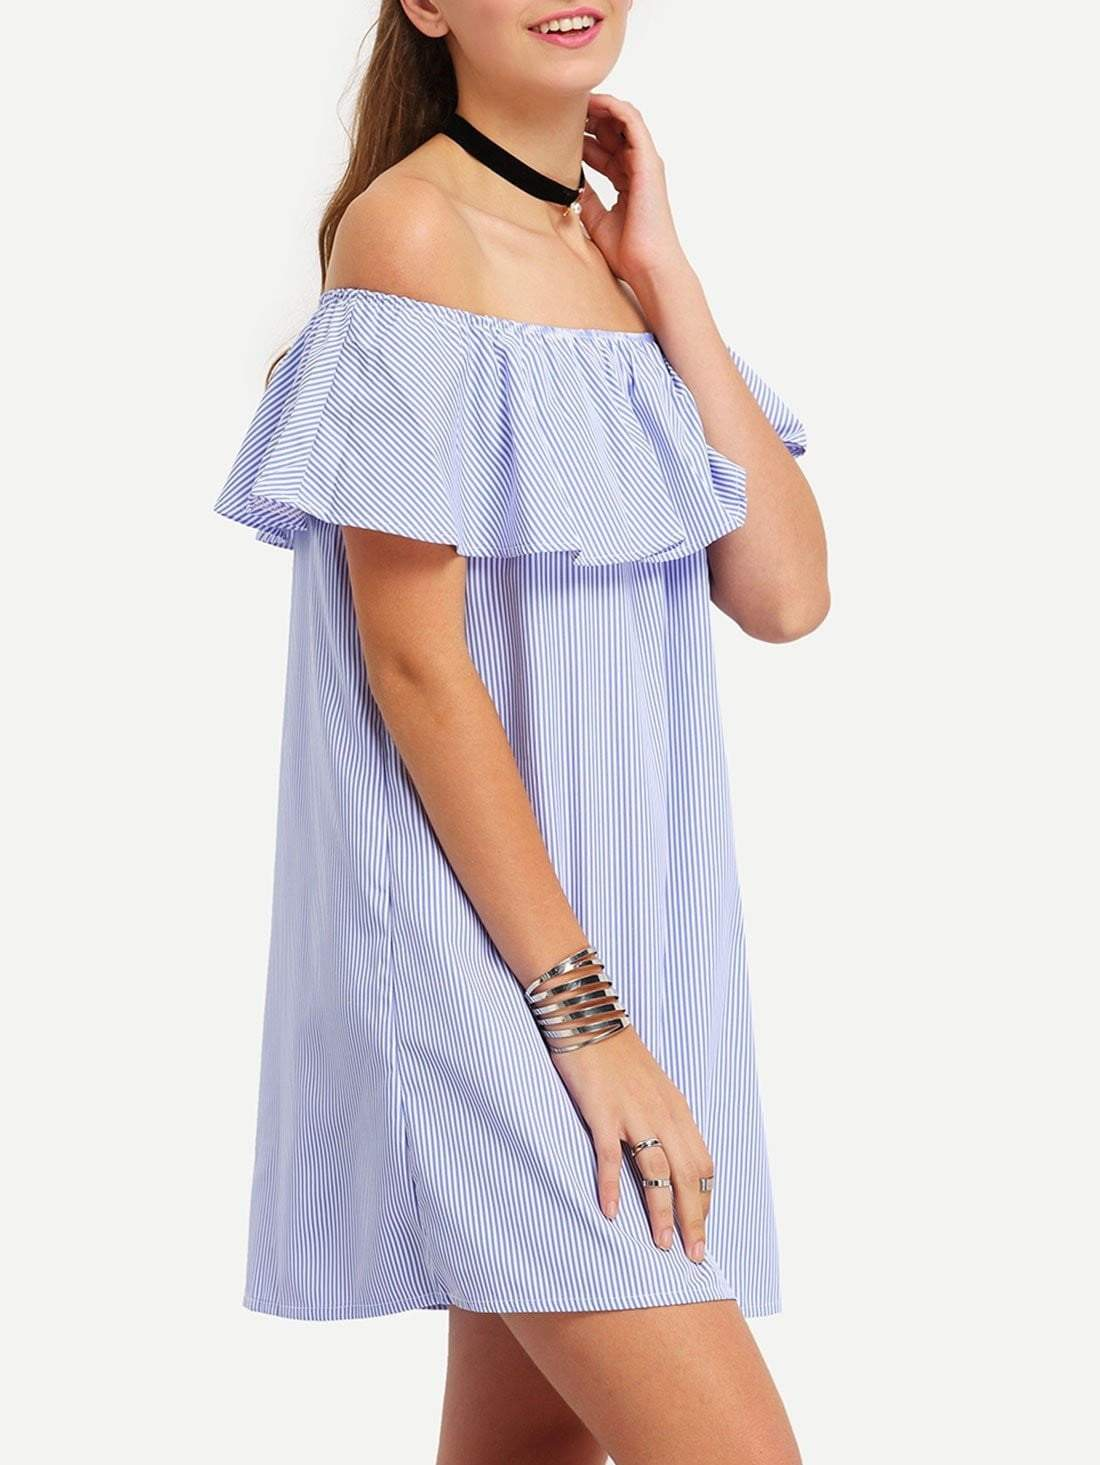 Vertical Striped Ruffled Off-The-Shoulder Dress - Dresses - Zooomberg - Zoomberg